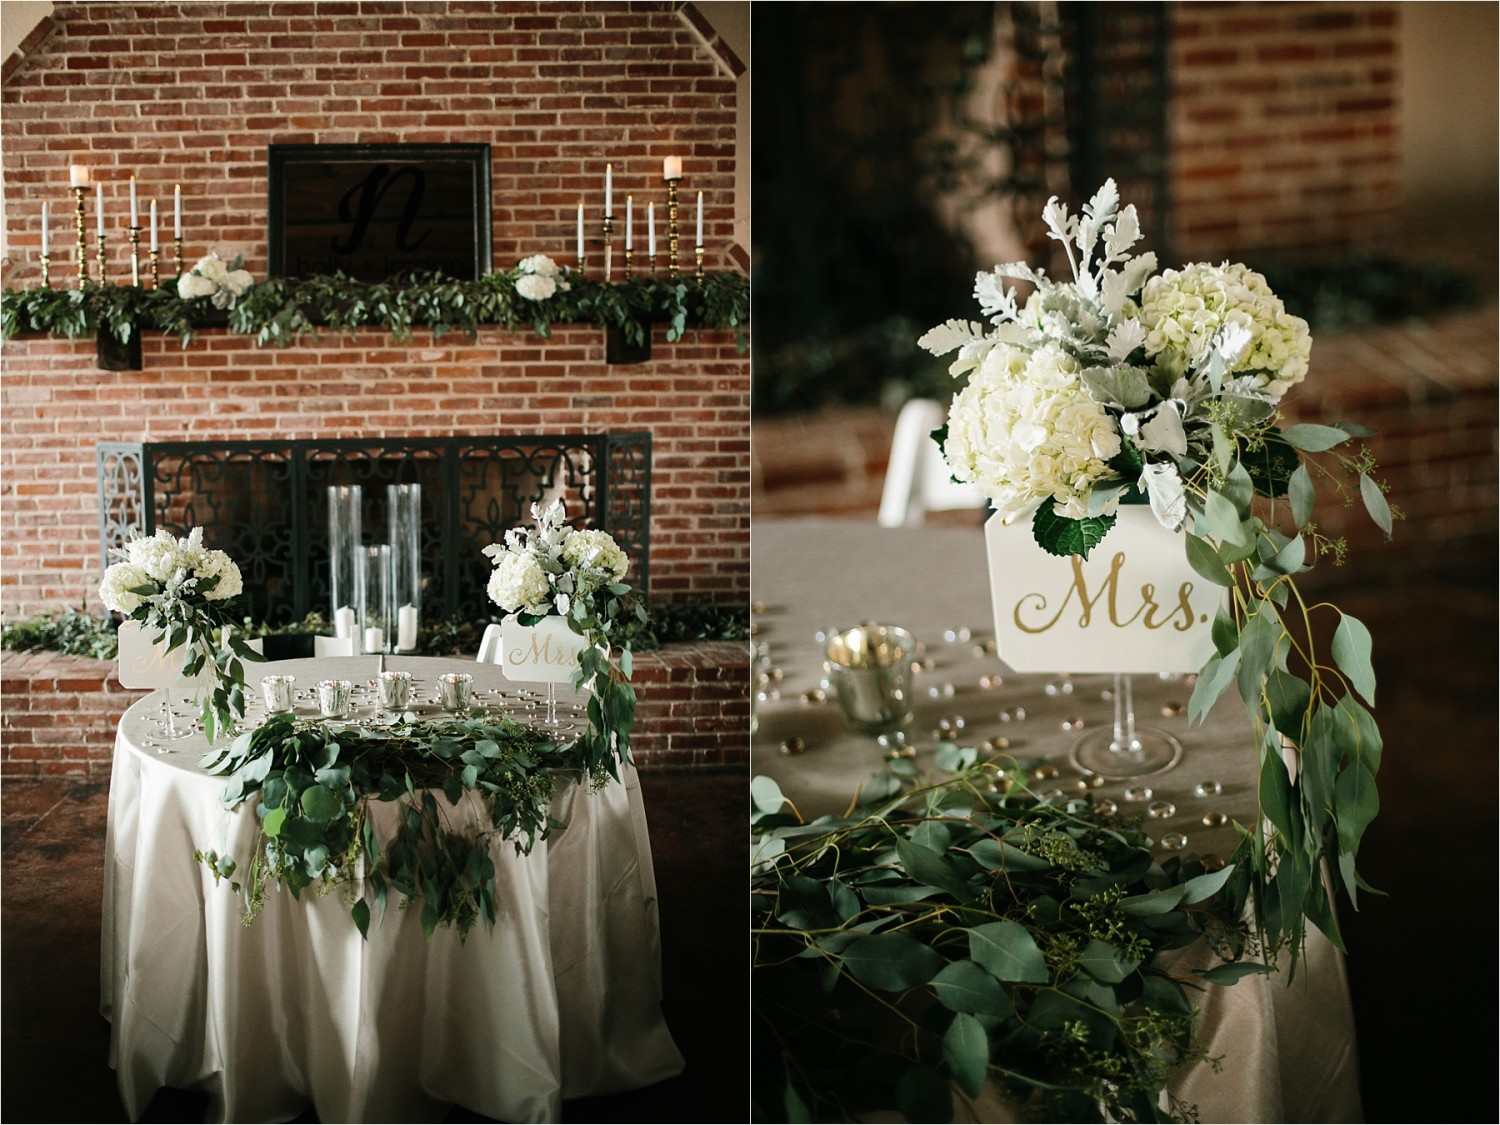 Holly + Jordan __ a black, gold, and greenery organic wedding at The Phoenix Ballroom in Waco, TX by North Texas Wedding Photographer Rachel Meagan Photography __ 14